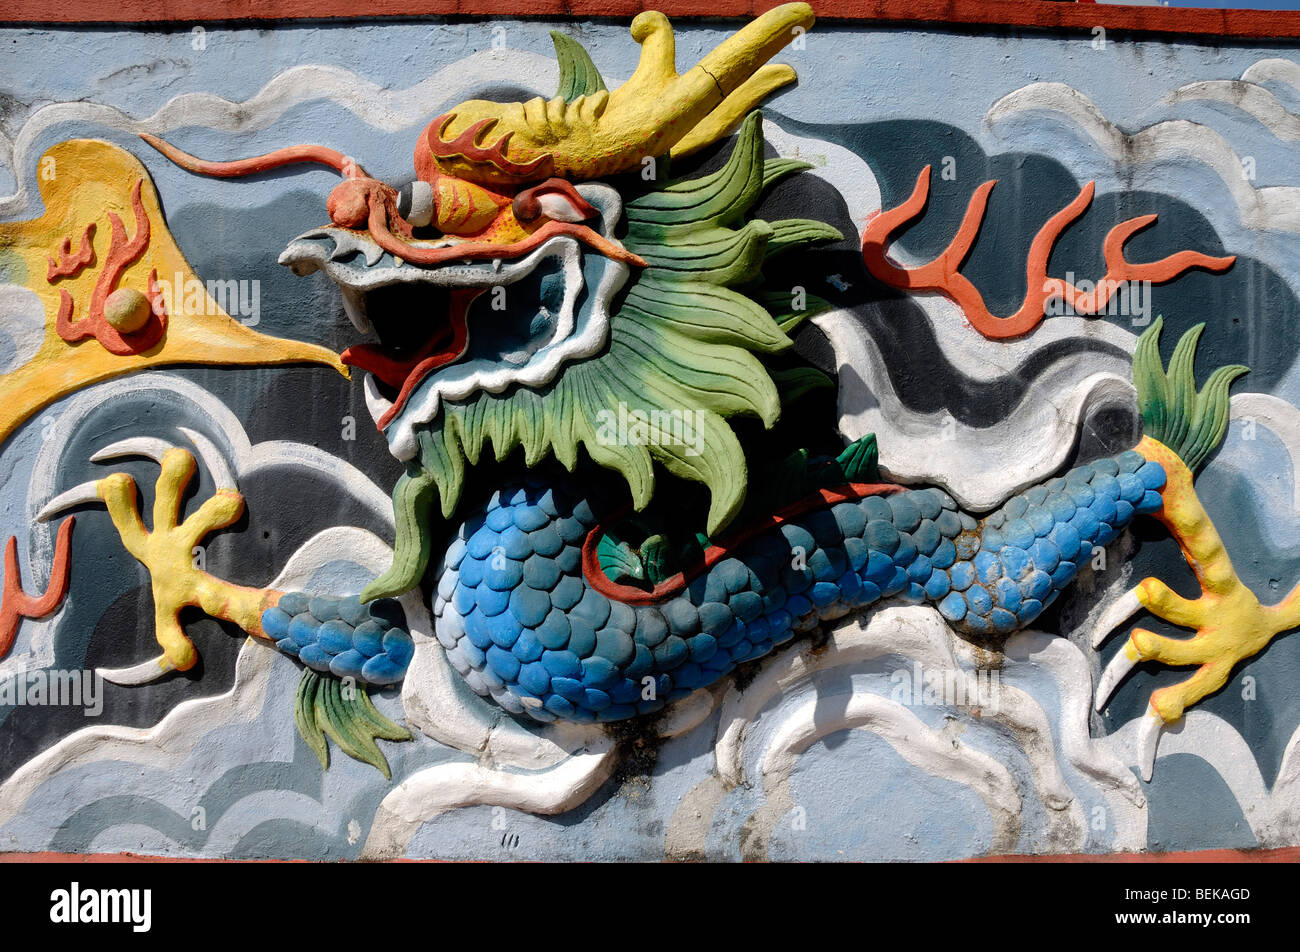 Chinese Dragon Sculpture at the Tua Pek Kong Chinese Temple Kuching Sarawak Malaysia Borneo - Stock Image